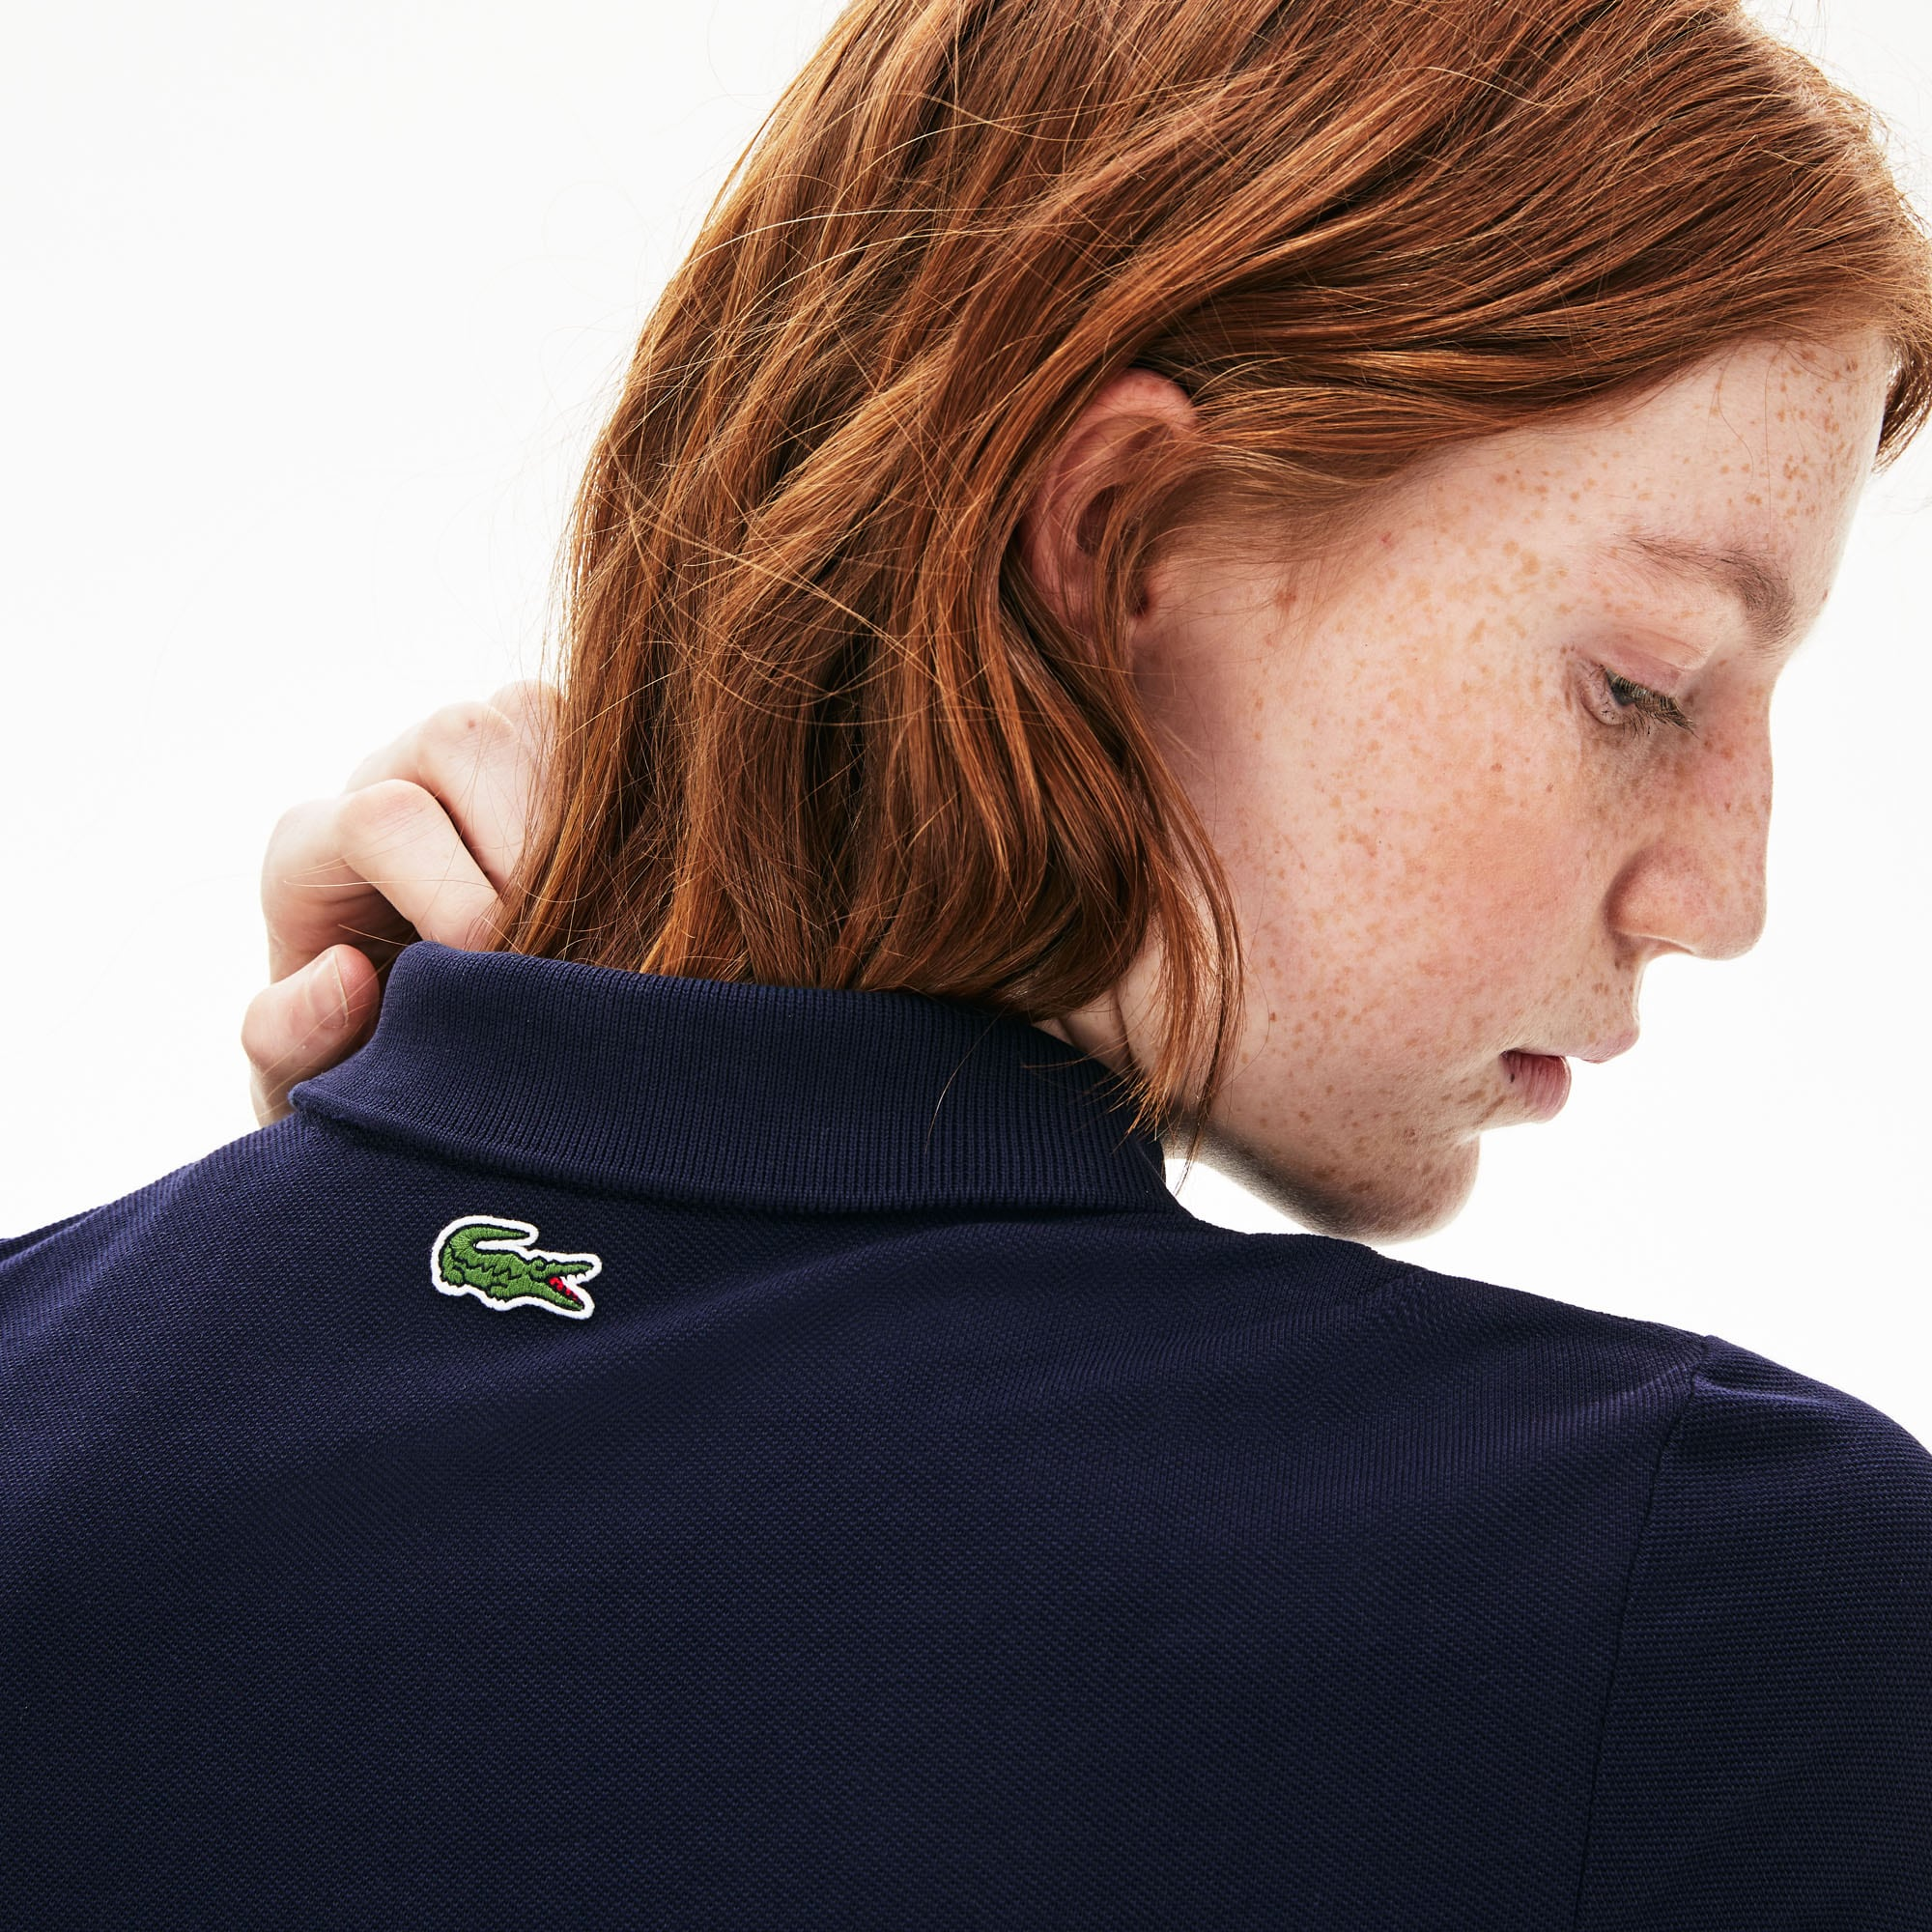 Unisex Lacoste LIVE Slim Fit Signature Embroidery Petit Piqué Polo Shirt